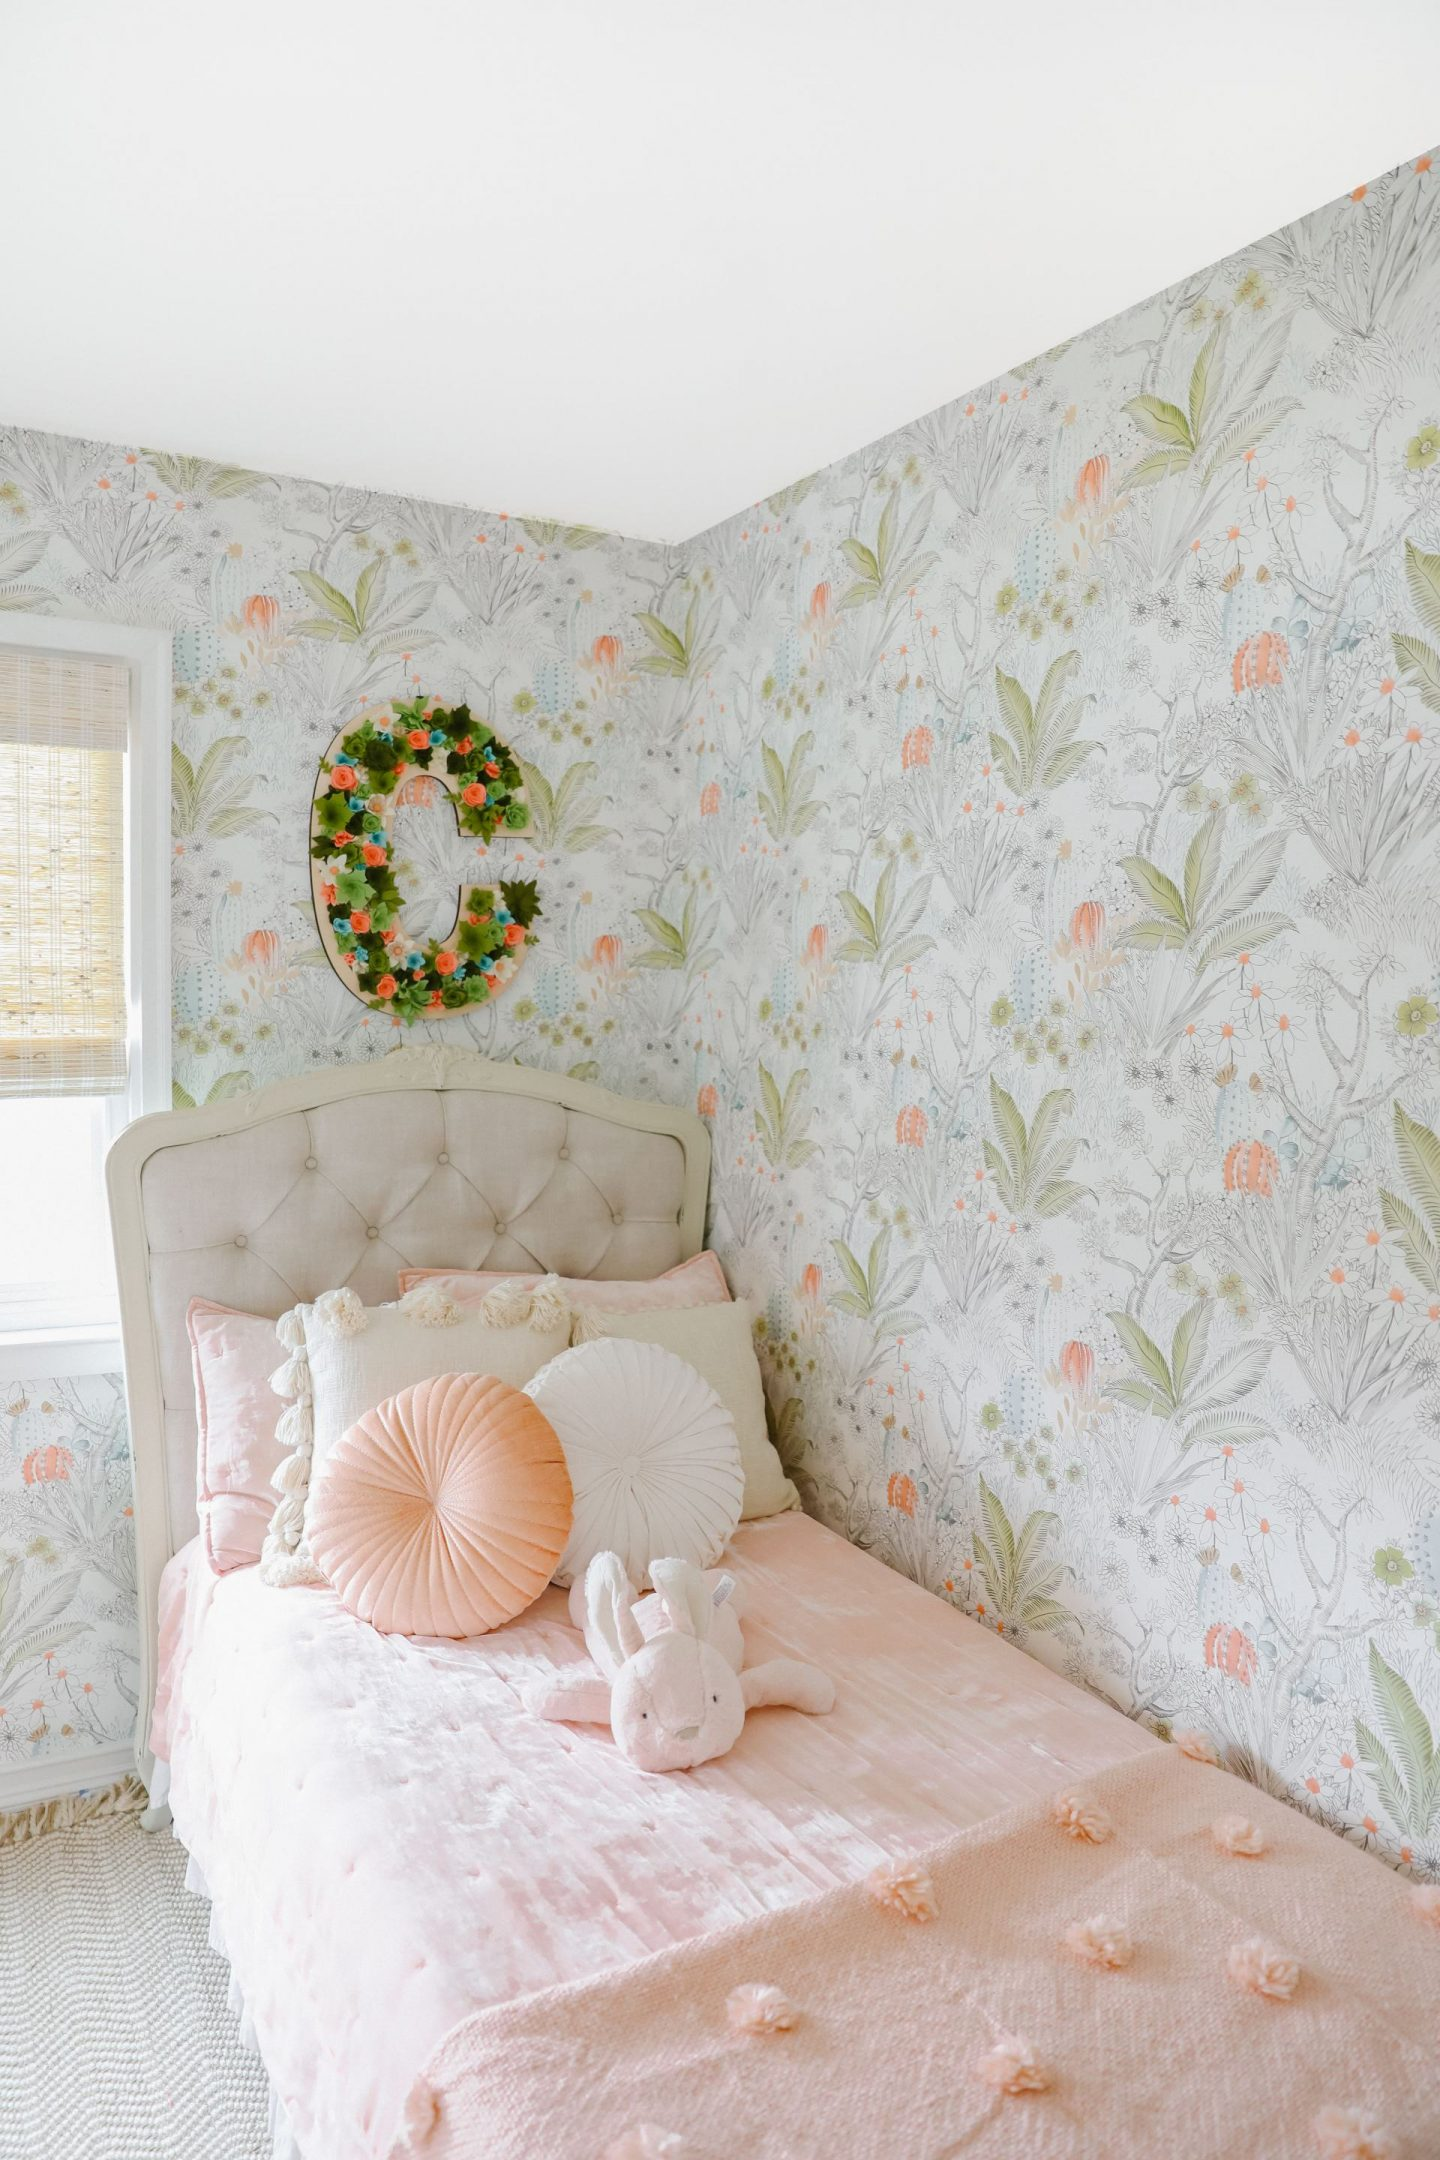 Anthropologie Boho wallpaper green and pink girls room décor inspiration, featured by top San Francisco blogger Lombard and Fifth.